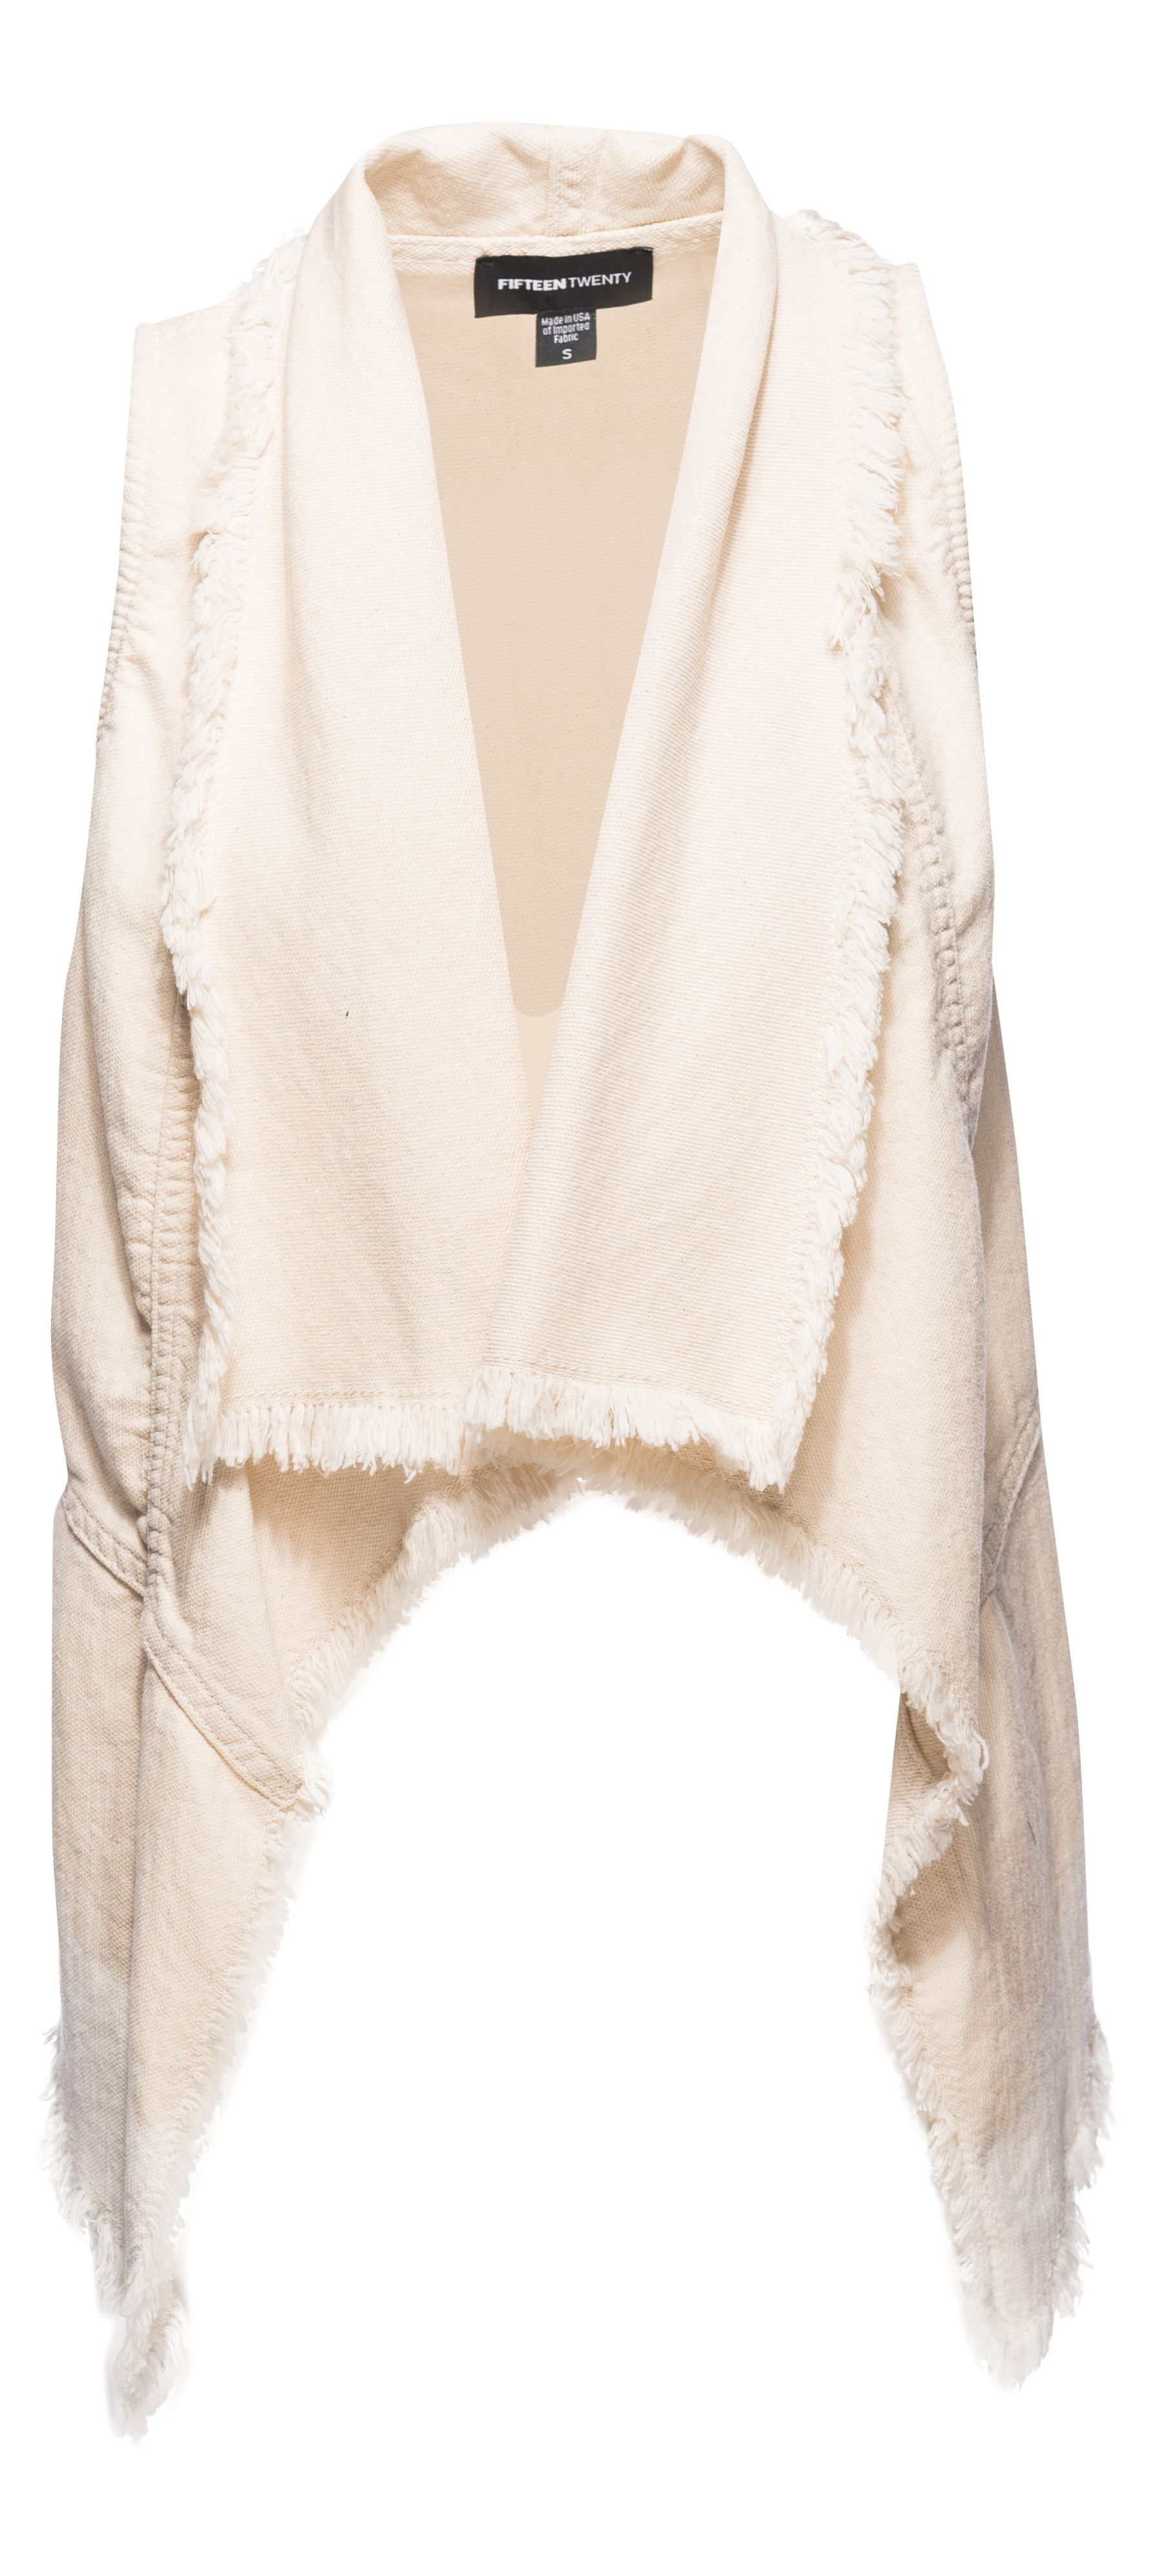 crossover b jacqueline collections sweater neck clothing drapes with cardigan drape vest